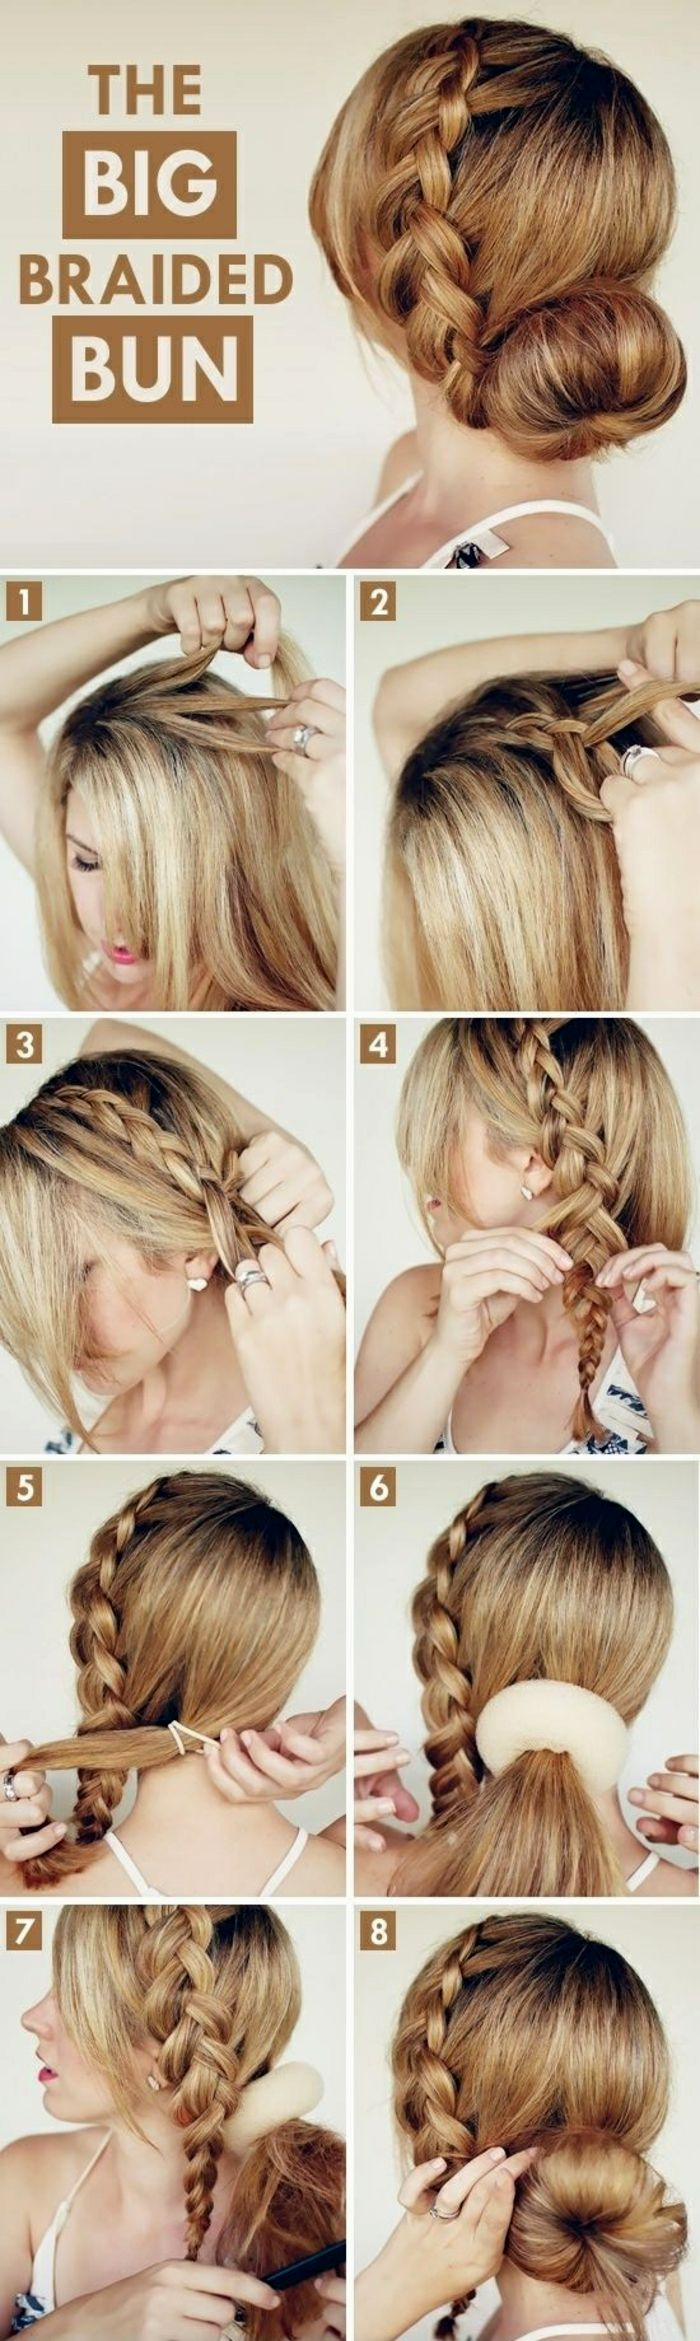 finest braided hairstyles with dutt picture-Cool braided hairstyles With Dutt architecture